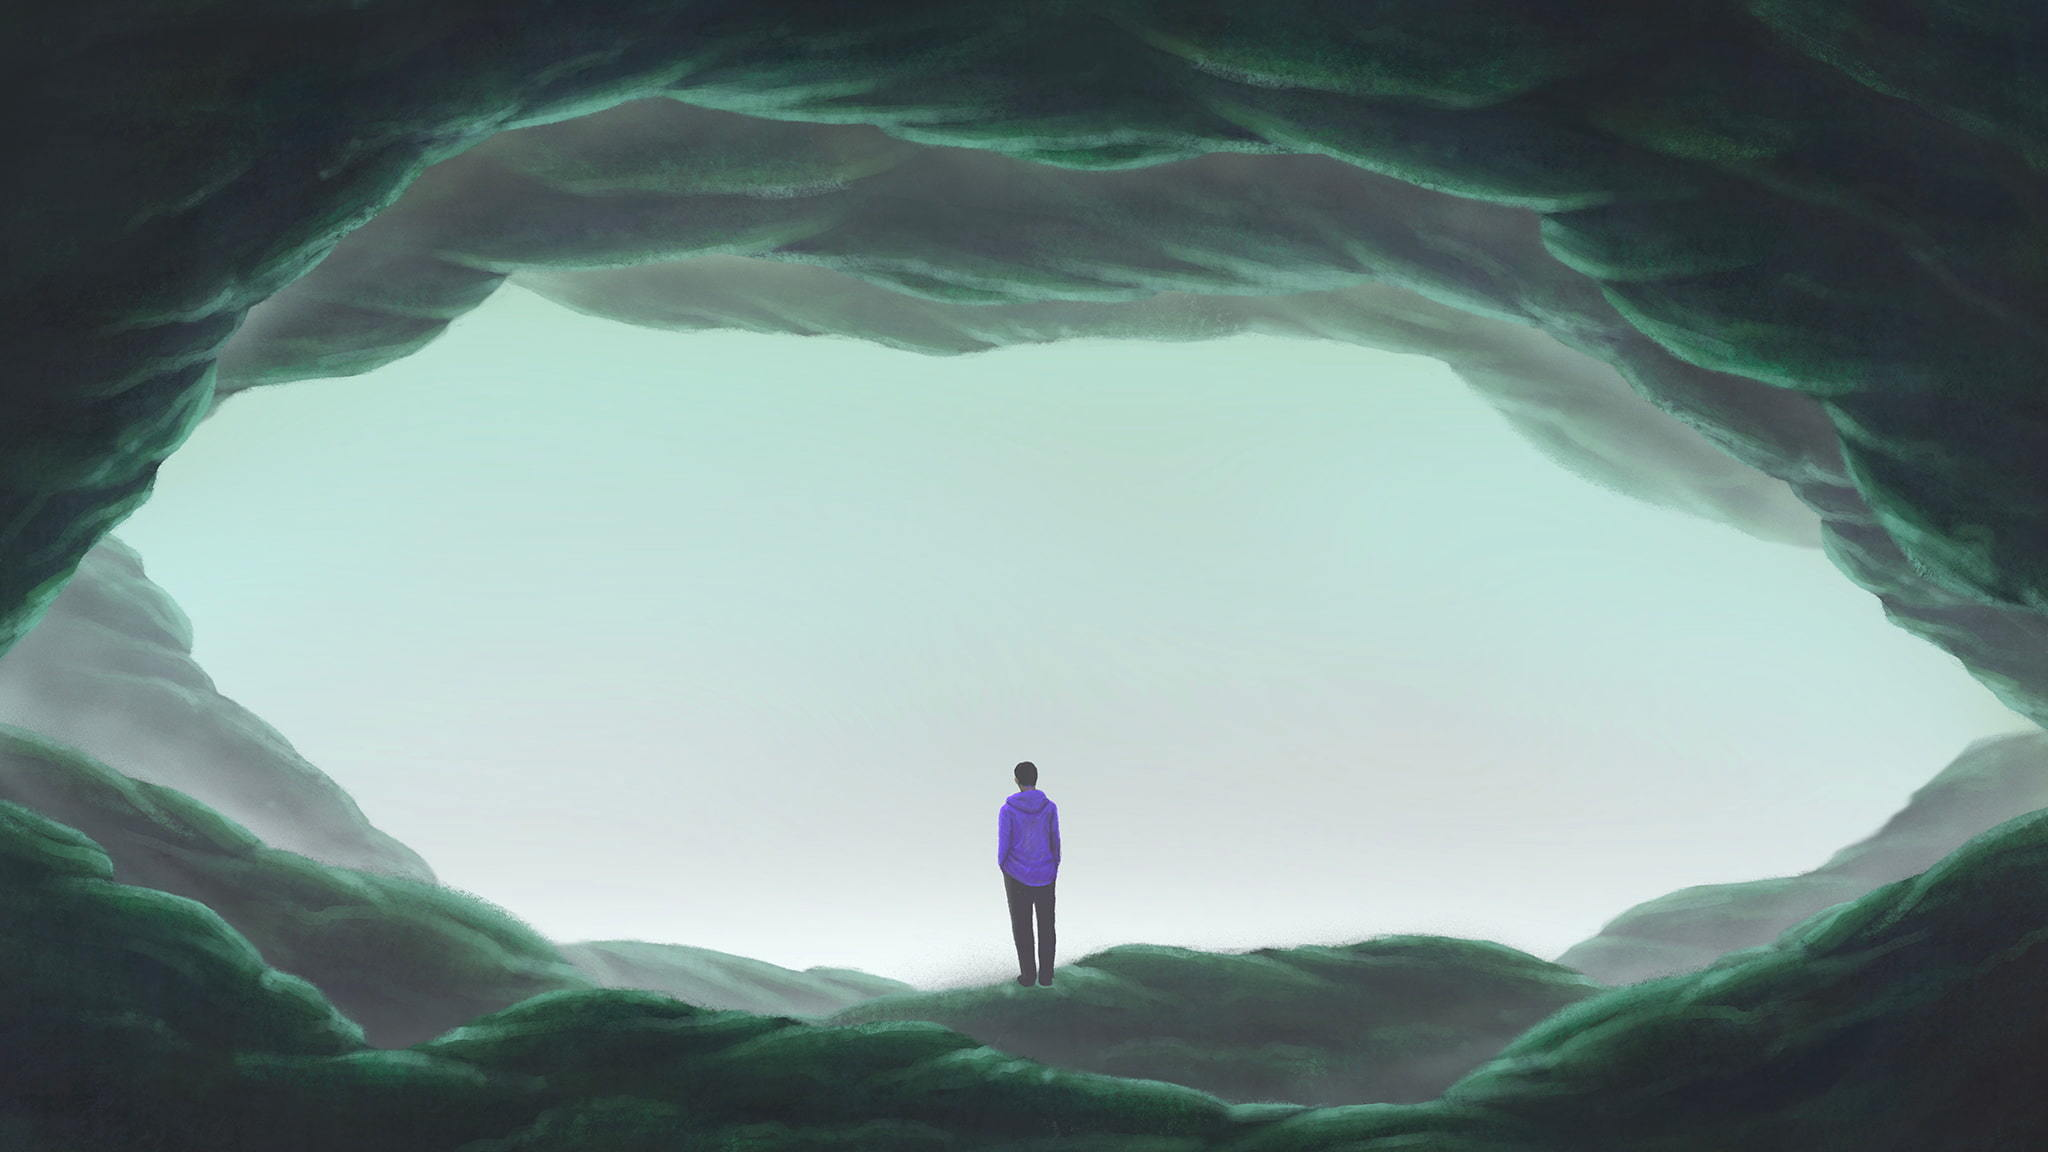 Surreal Illustration Of A Man Standing Alone In A Large Cave